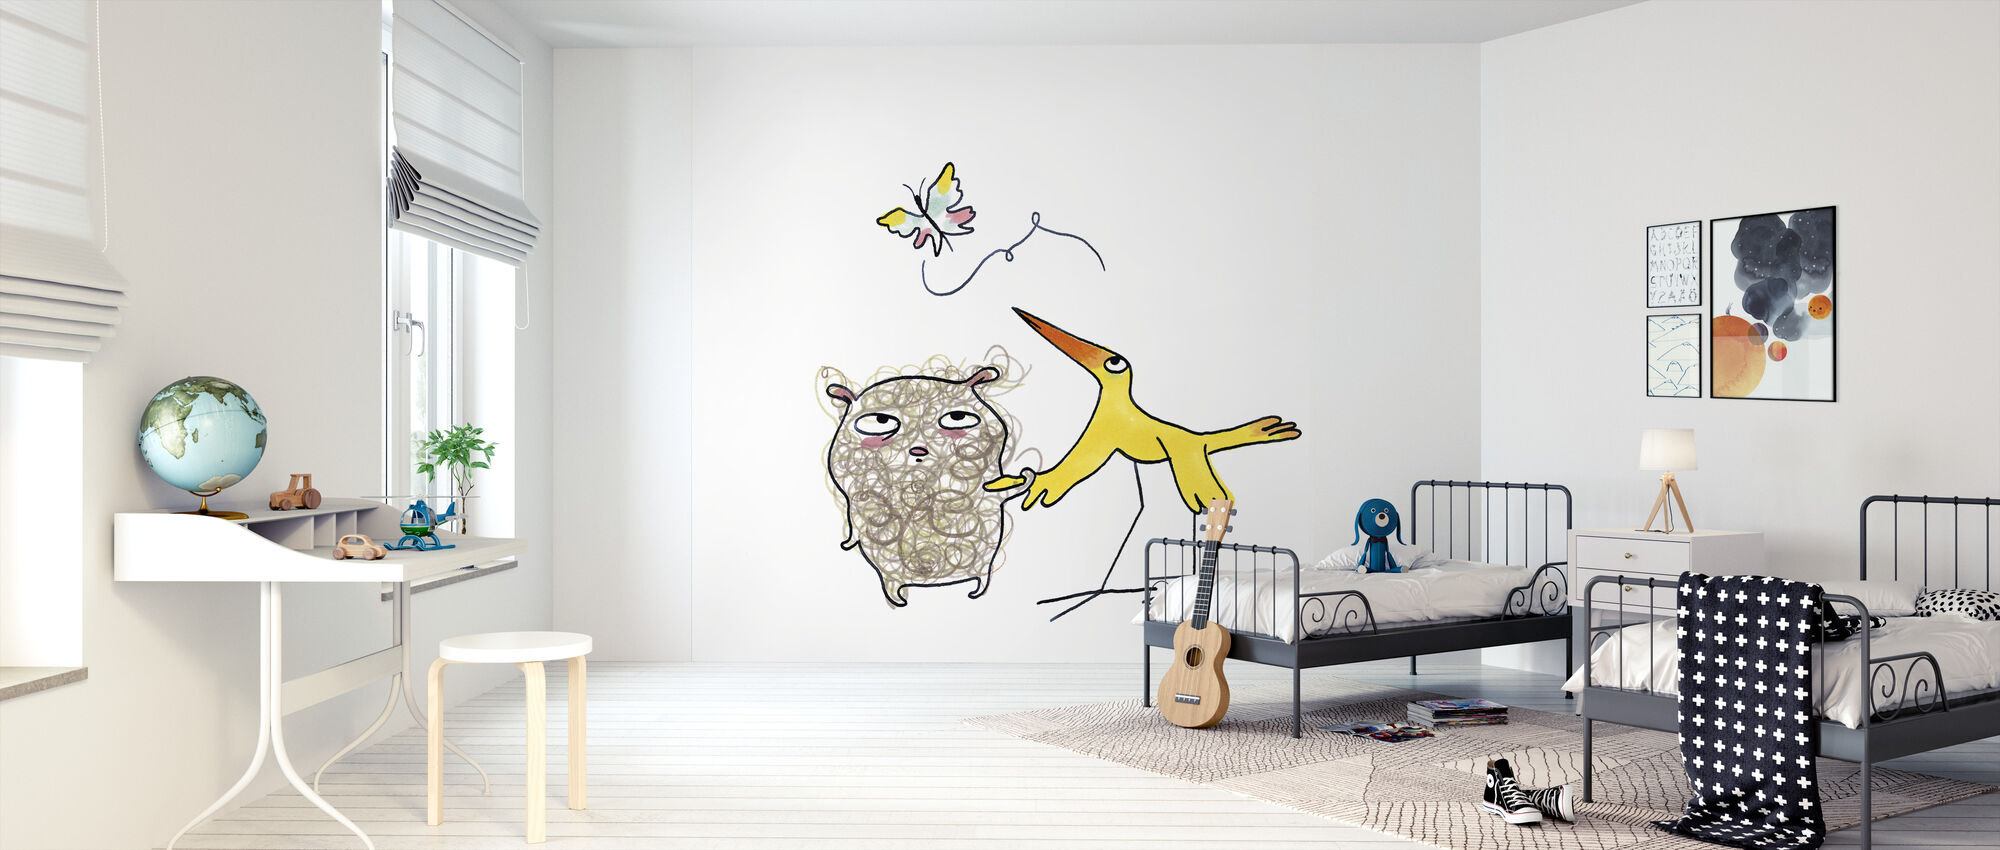 Whose Butterfly 4 - Wallpaper - Kids Room